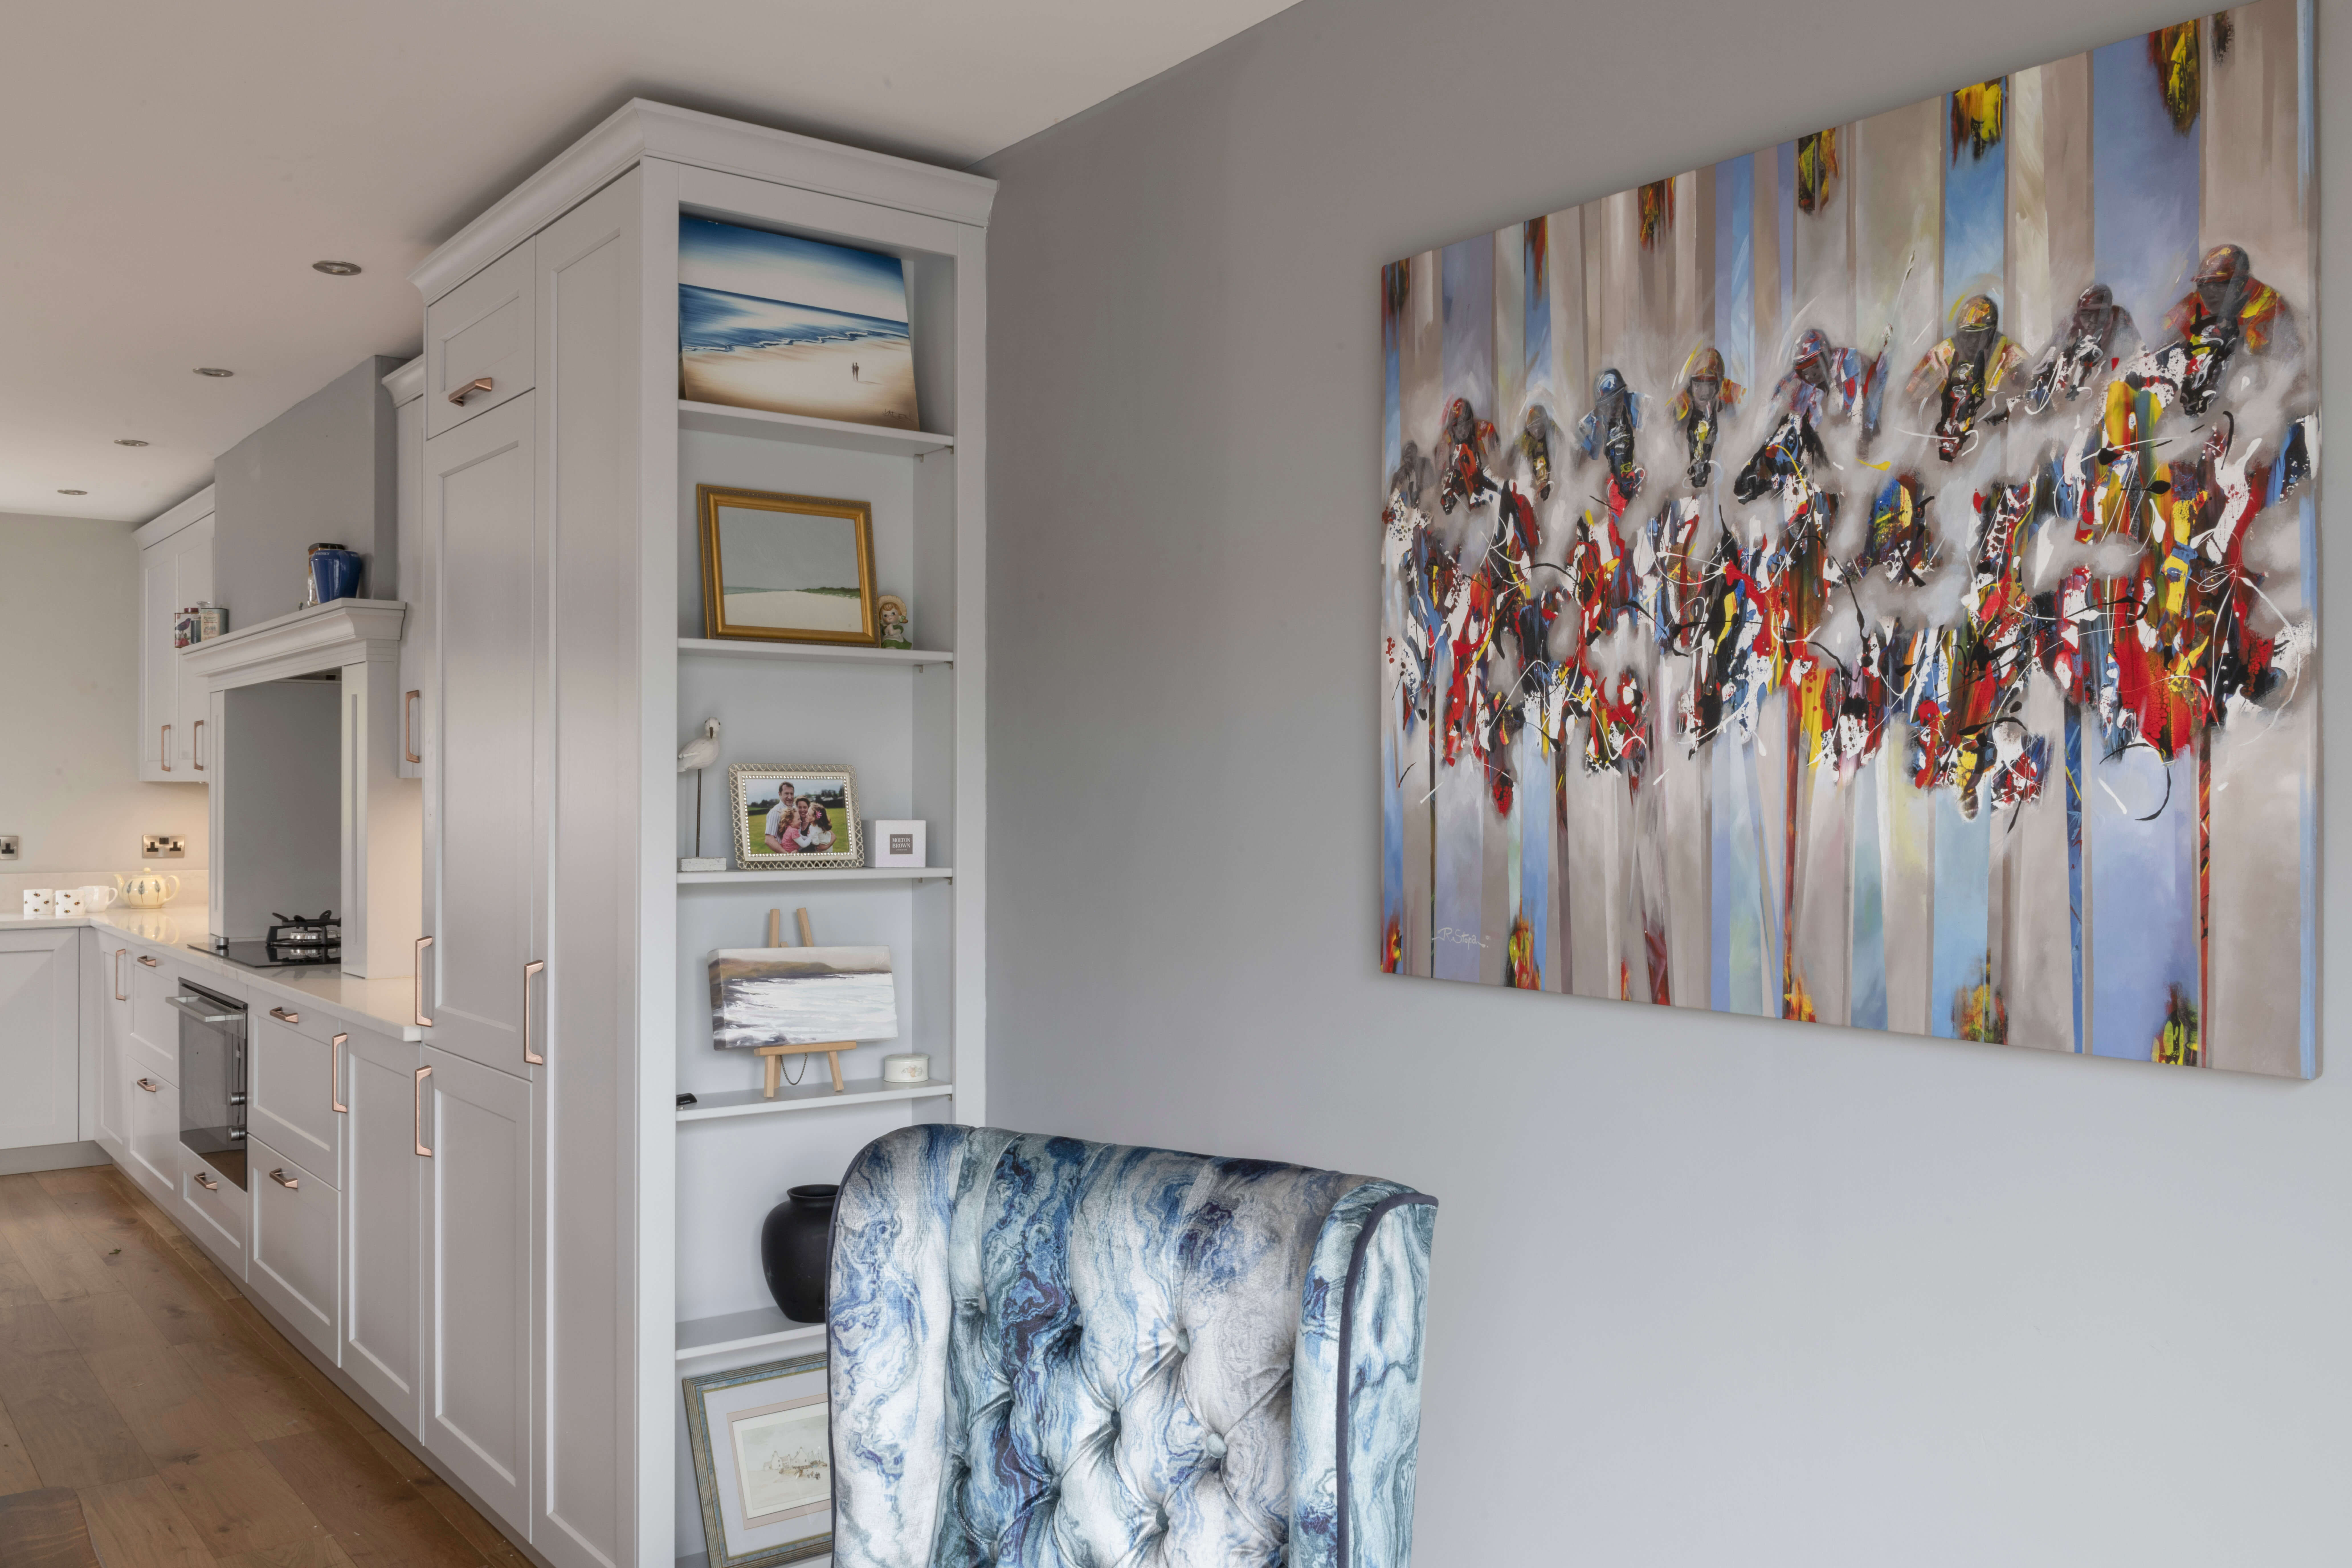 A light and airy dining area is complemented by the clients' artwork